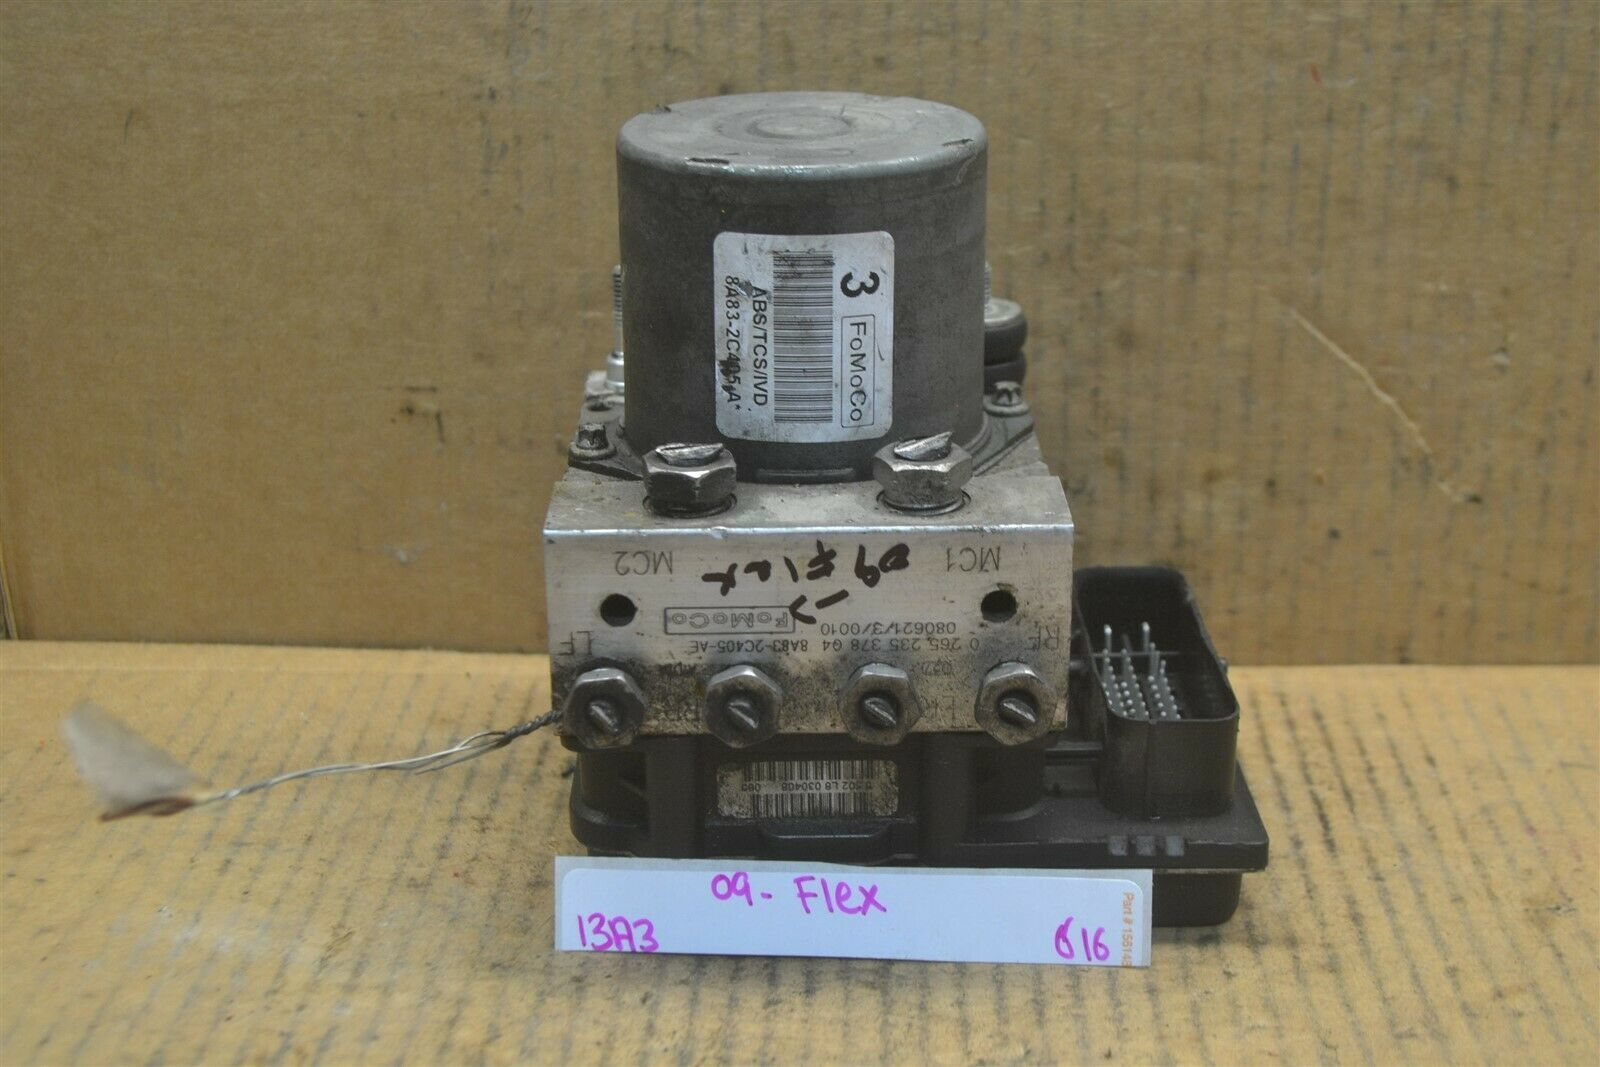 Primary image for 2009 Ford Flex ABS Pump Control OEM 8A832C405AE Module 616-13A4